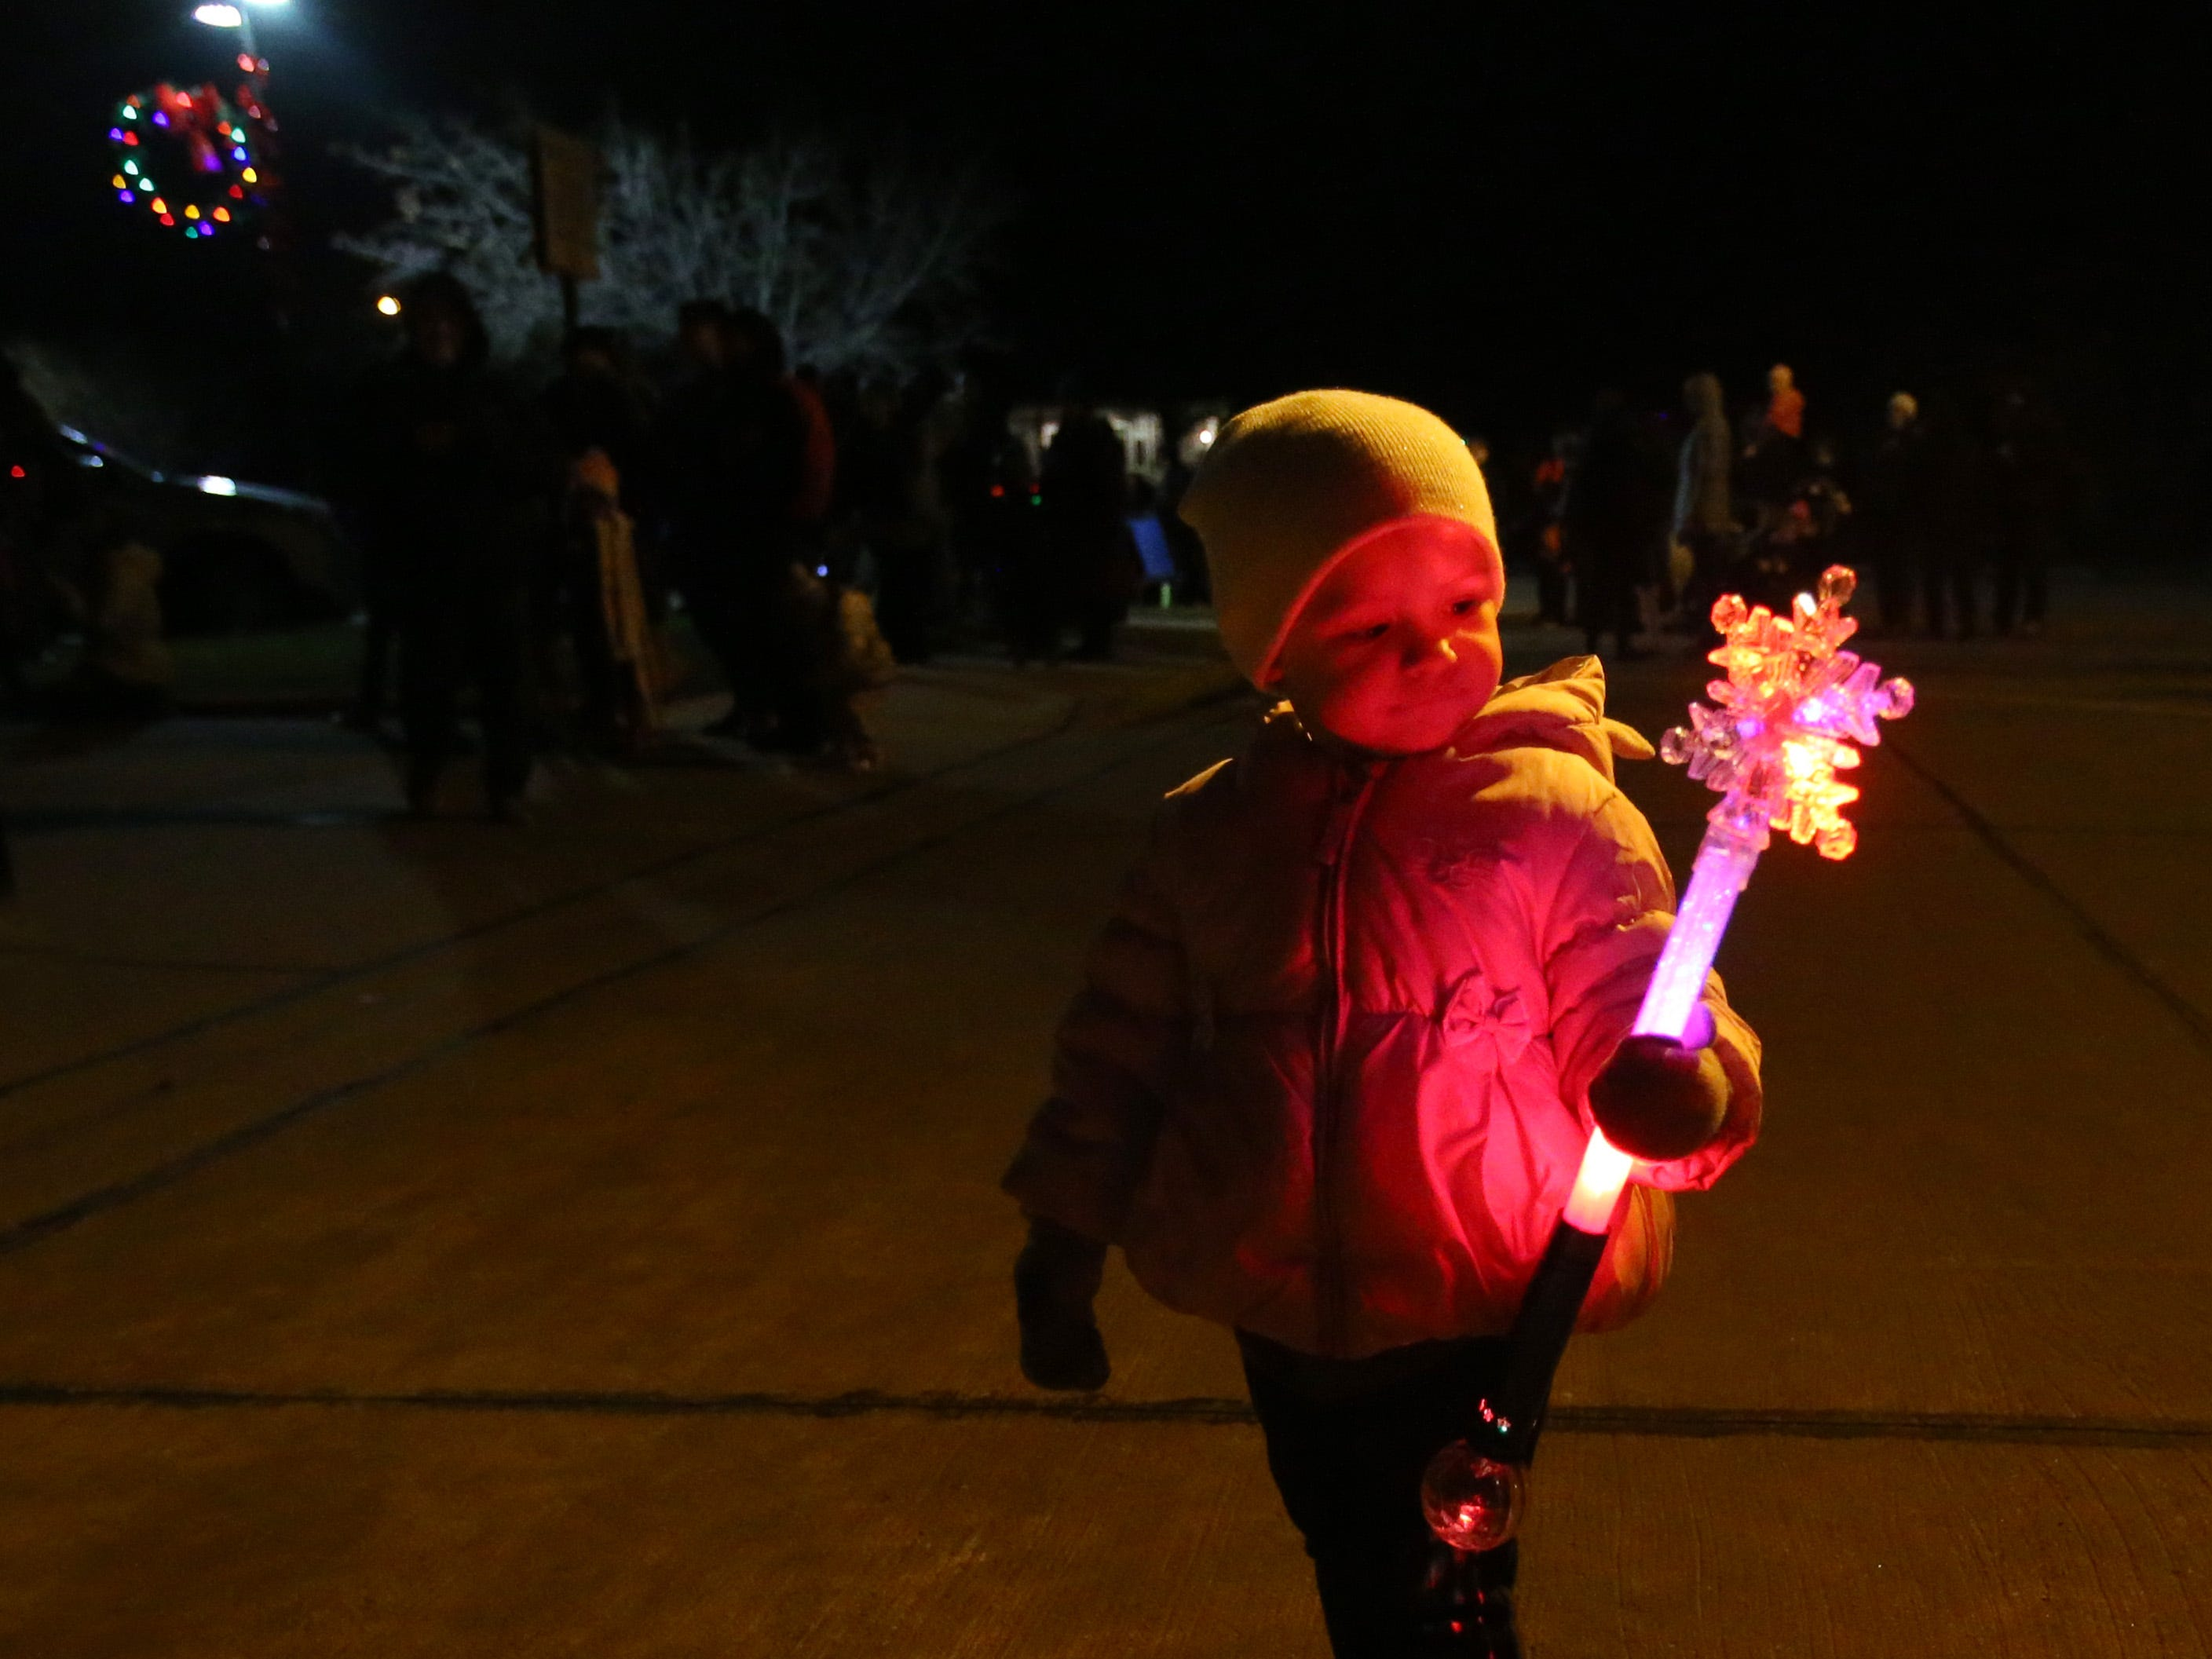 Nora Hintz plays with a lit wand while waiting for the start of the first South Milwaukee Lions Club Lighted Christmas Parade along 15th Avenue near City Hall on Nov. 24 that followed the Old Fashioned Christmas festivities at City Hall.